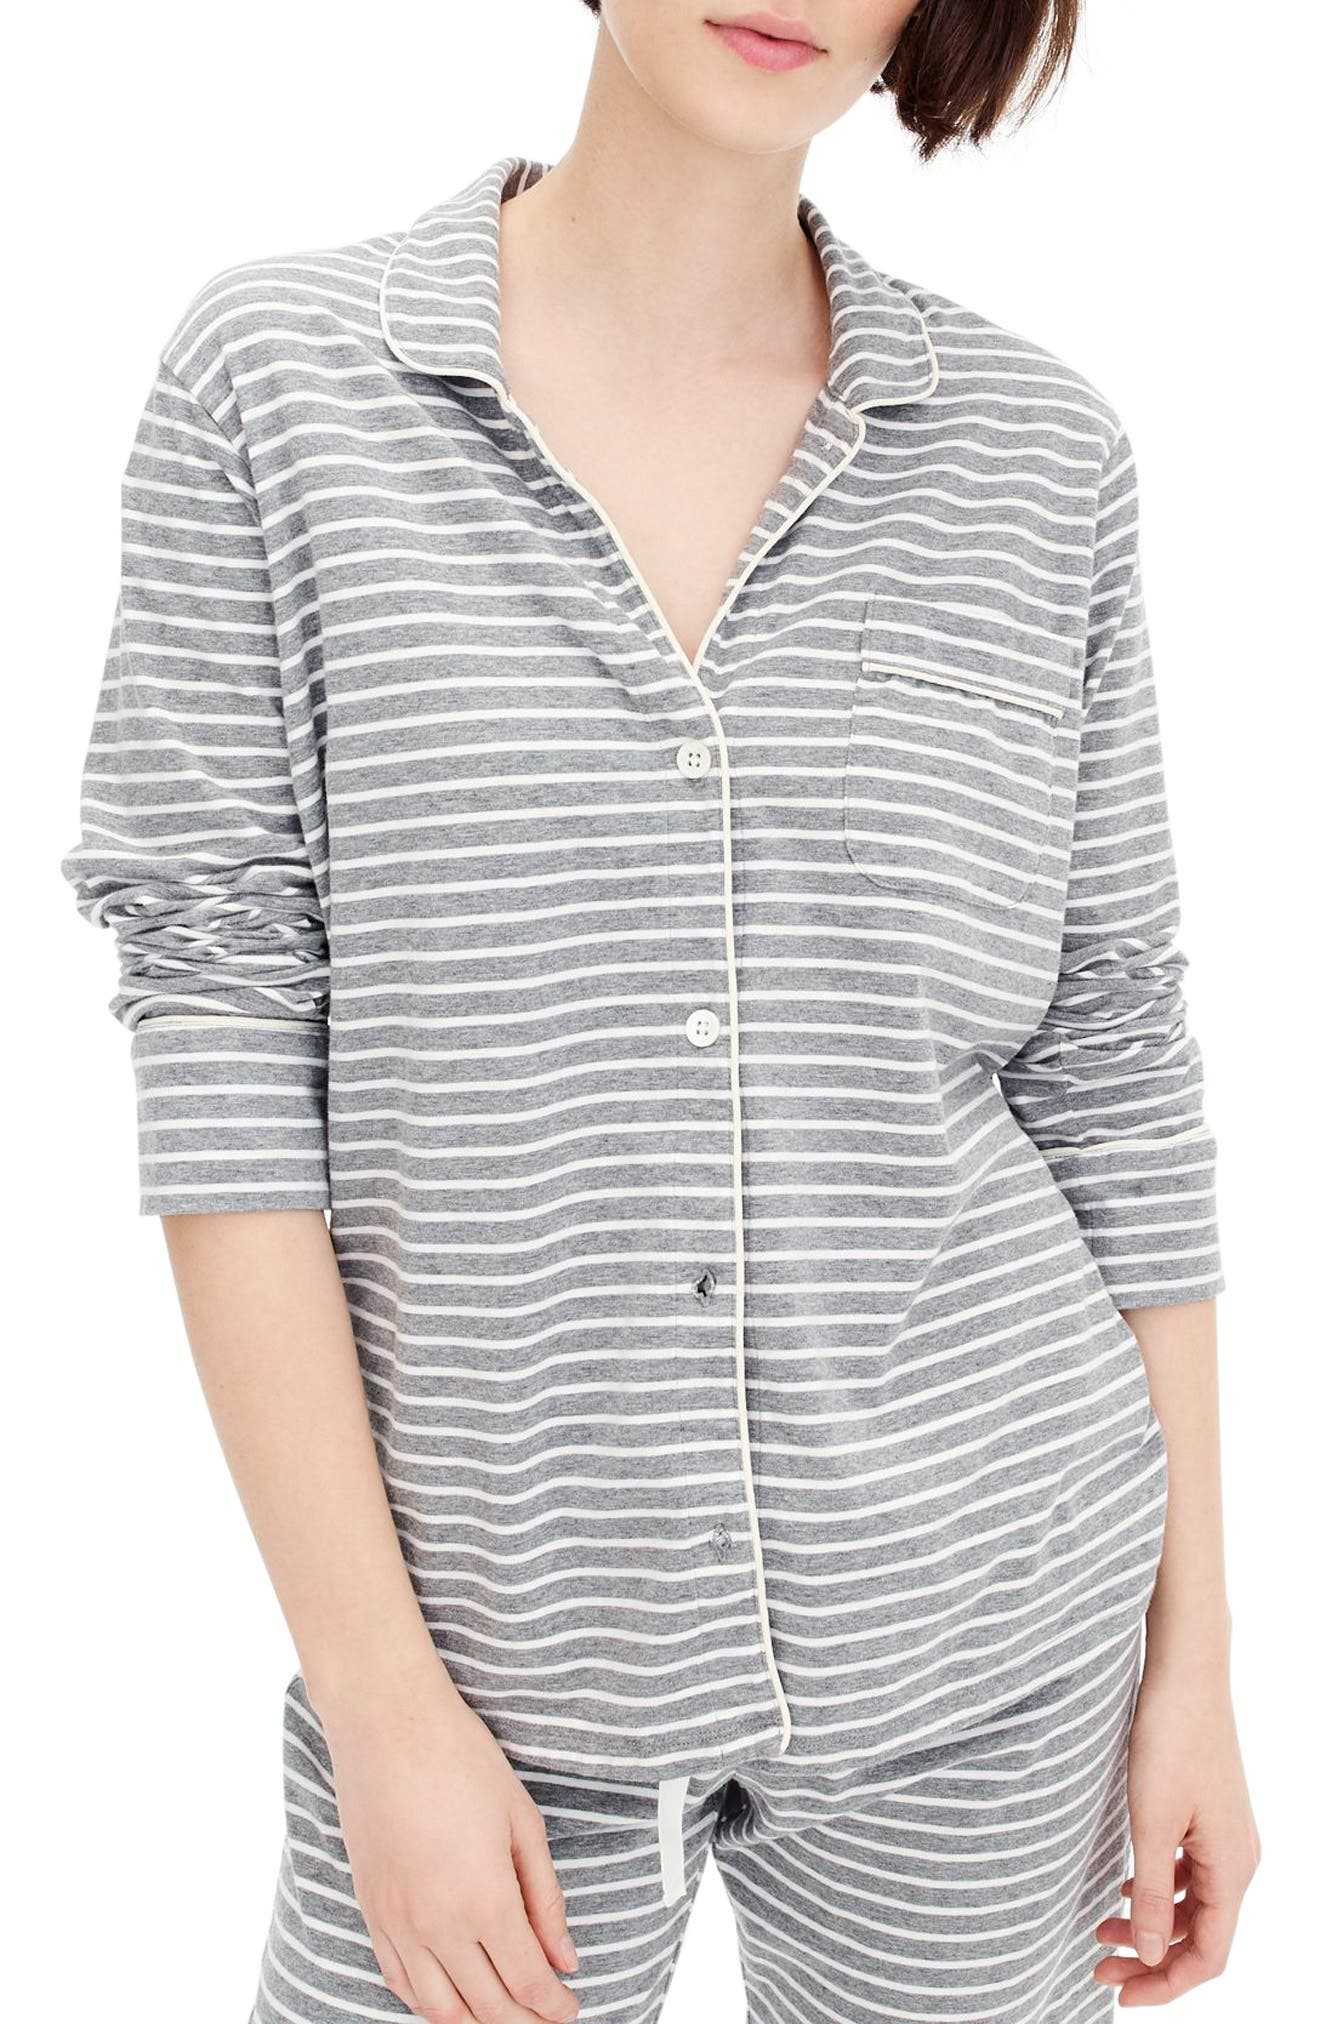 Dreamy Stripe Cotton Pajamas,                             Main thumbnail 1, color,                             HEATHER GRAPHITE IVORY